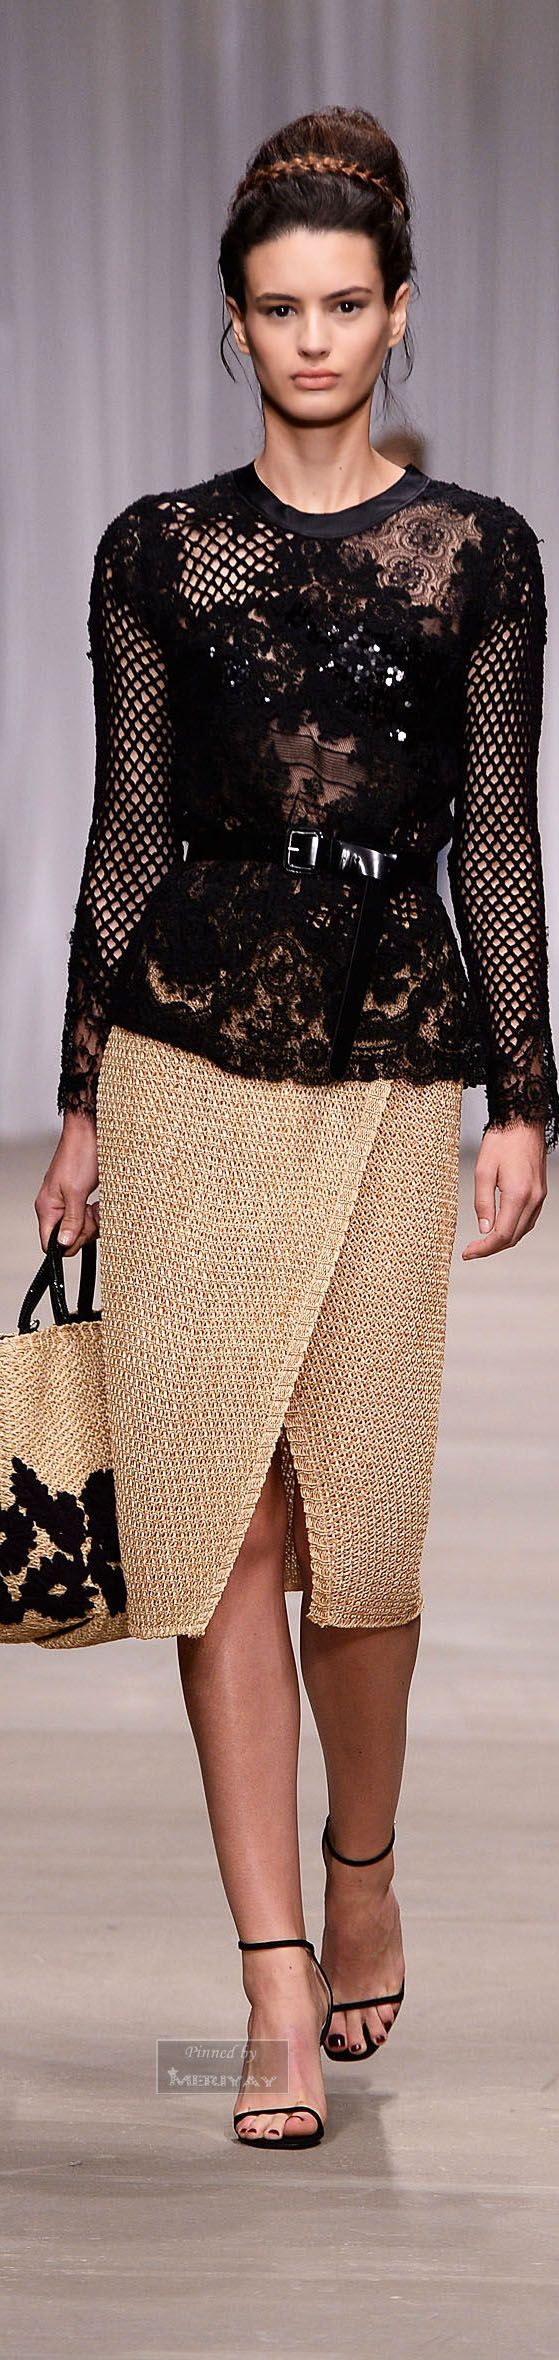 Ermanno Scervino.Spring 2015. ♪ ♪ ... #inspiration #diy #crochet #knit GB http://www.pinterest.com/gigibrazil/boards/